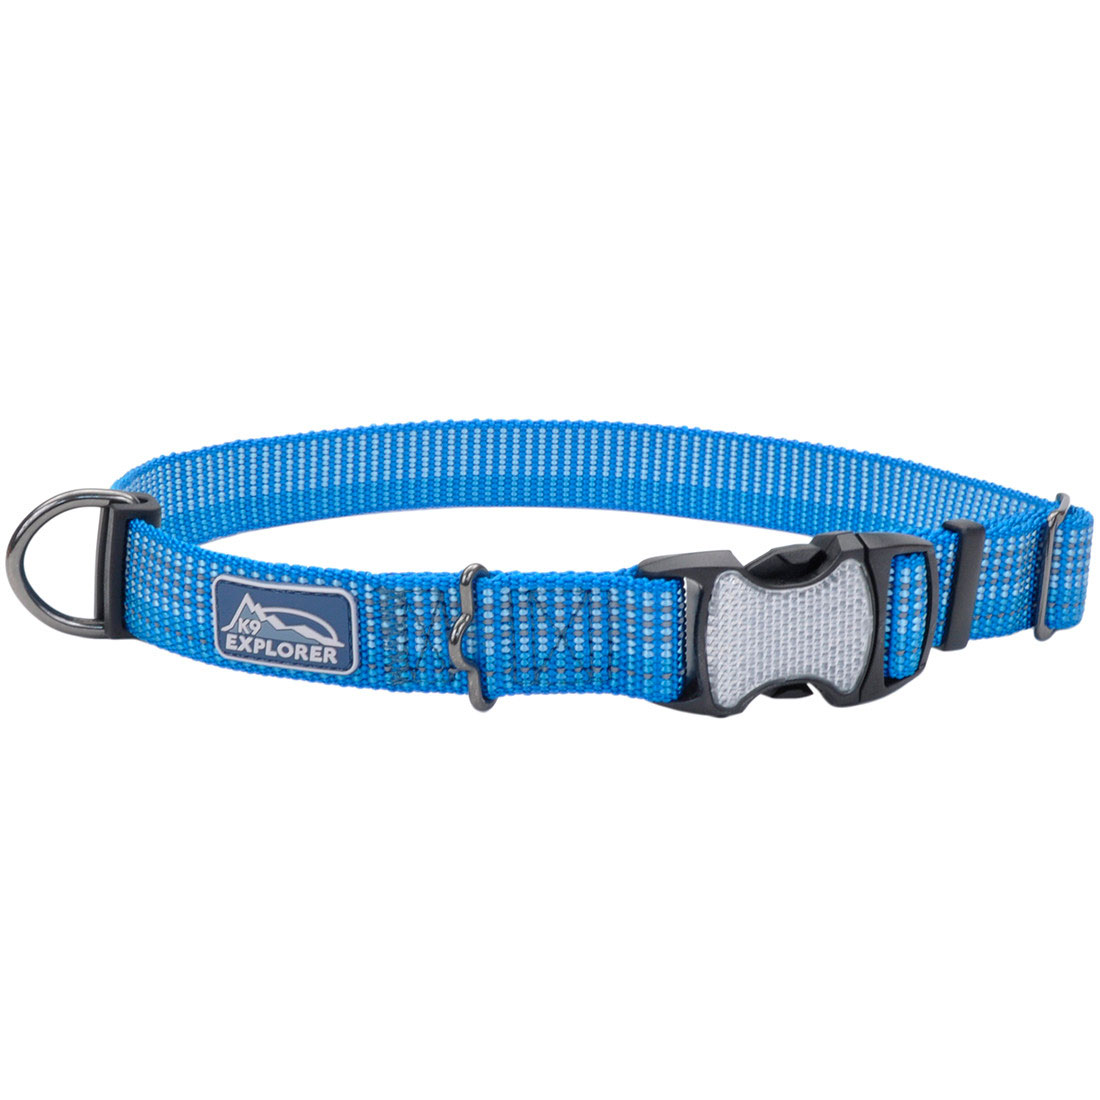 K9 Explorer® Brights Reflective Adjustable Dog Collar